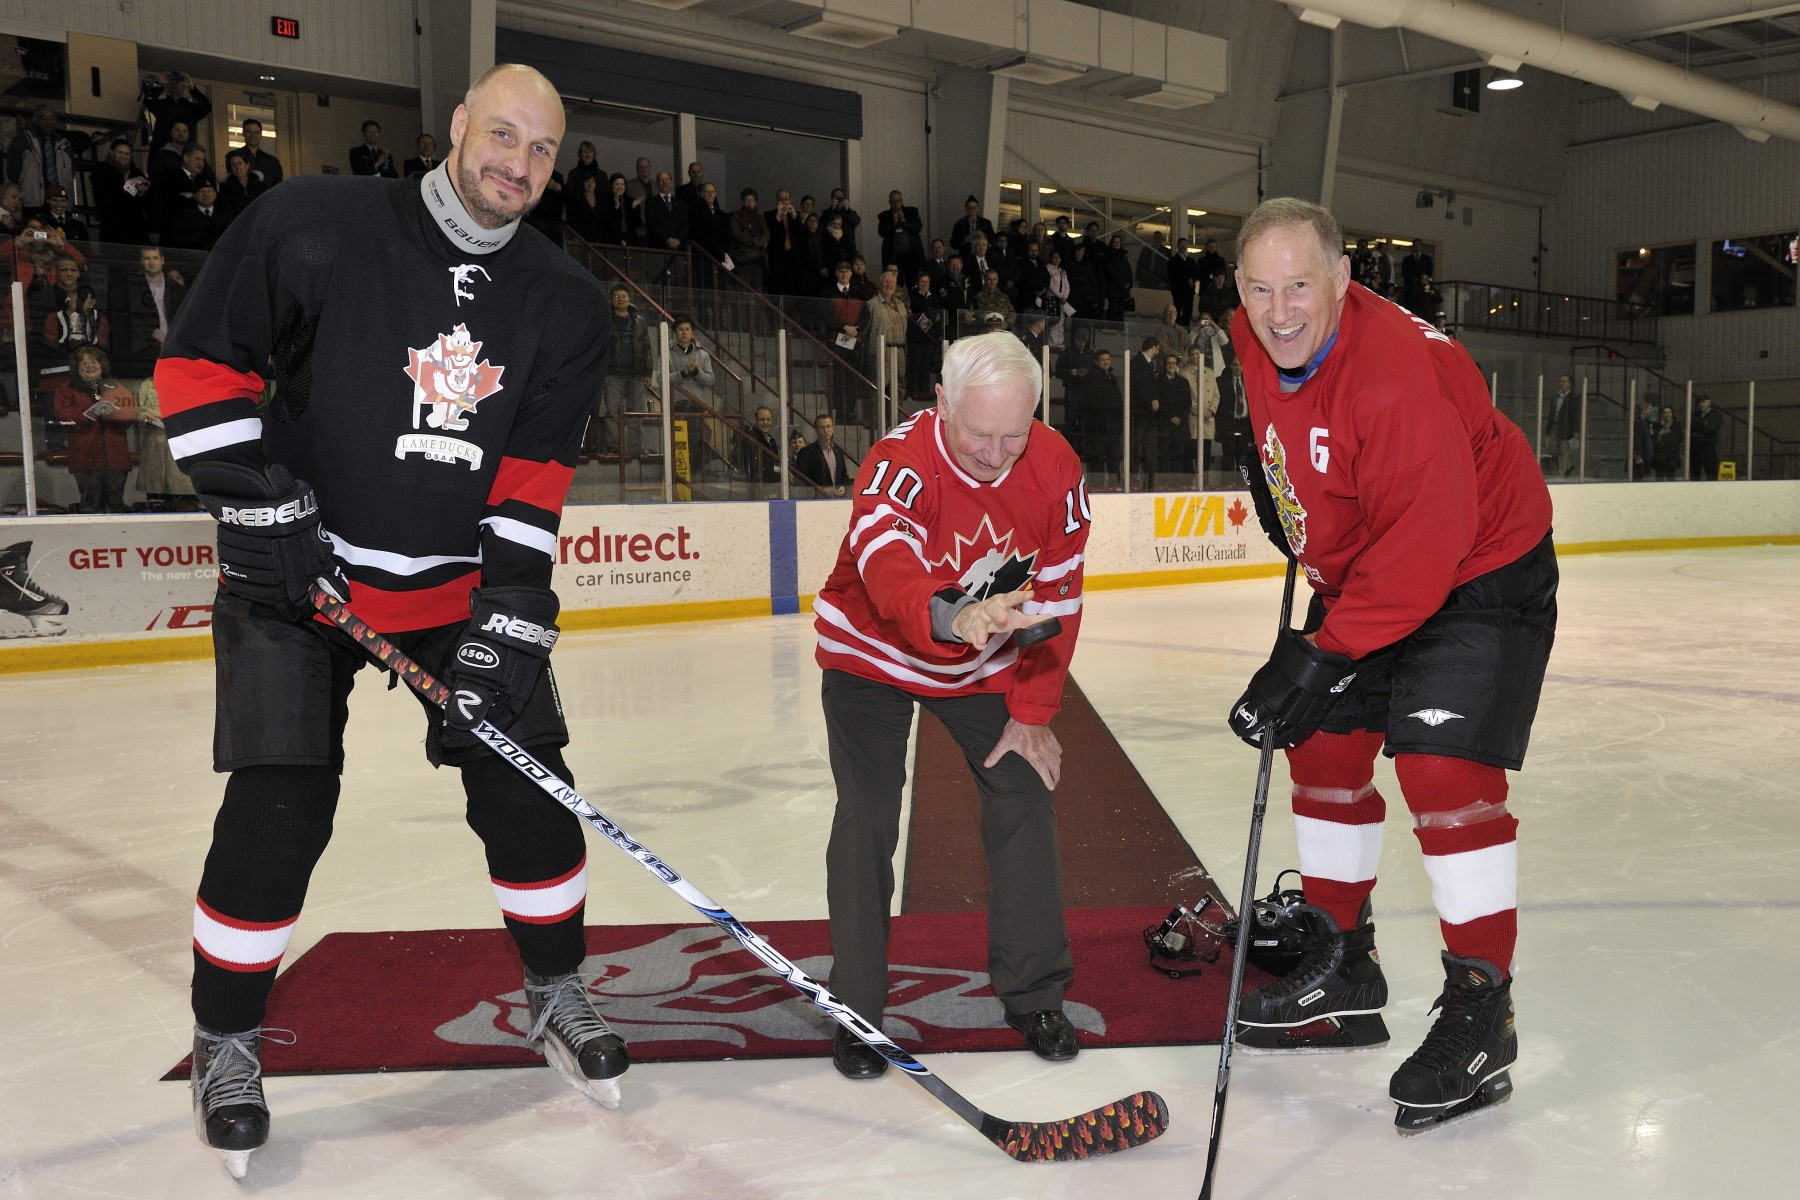 His Excellency dropped the puck in a friendly hockey game in support of the Military Families Fund.